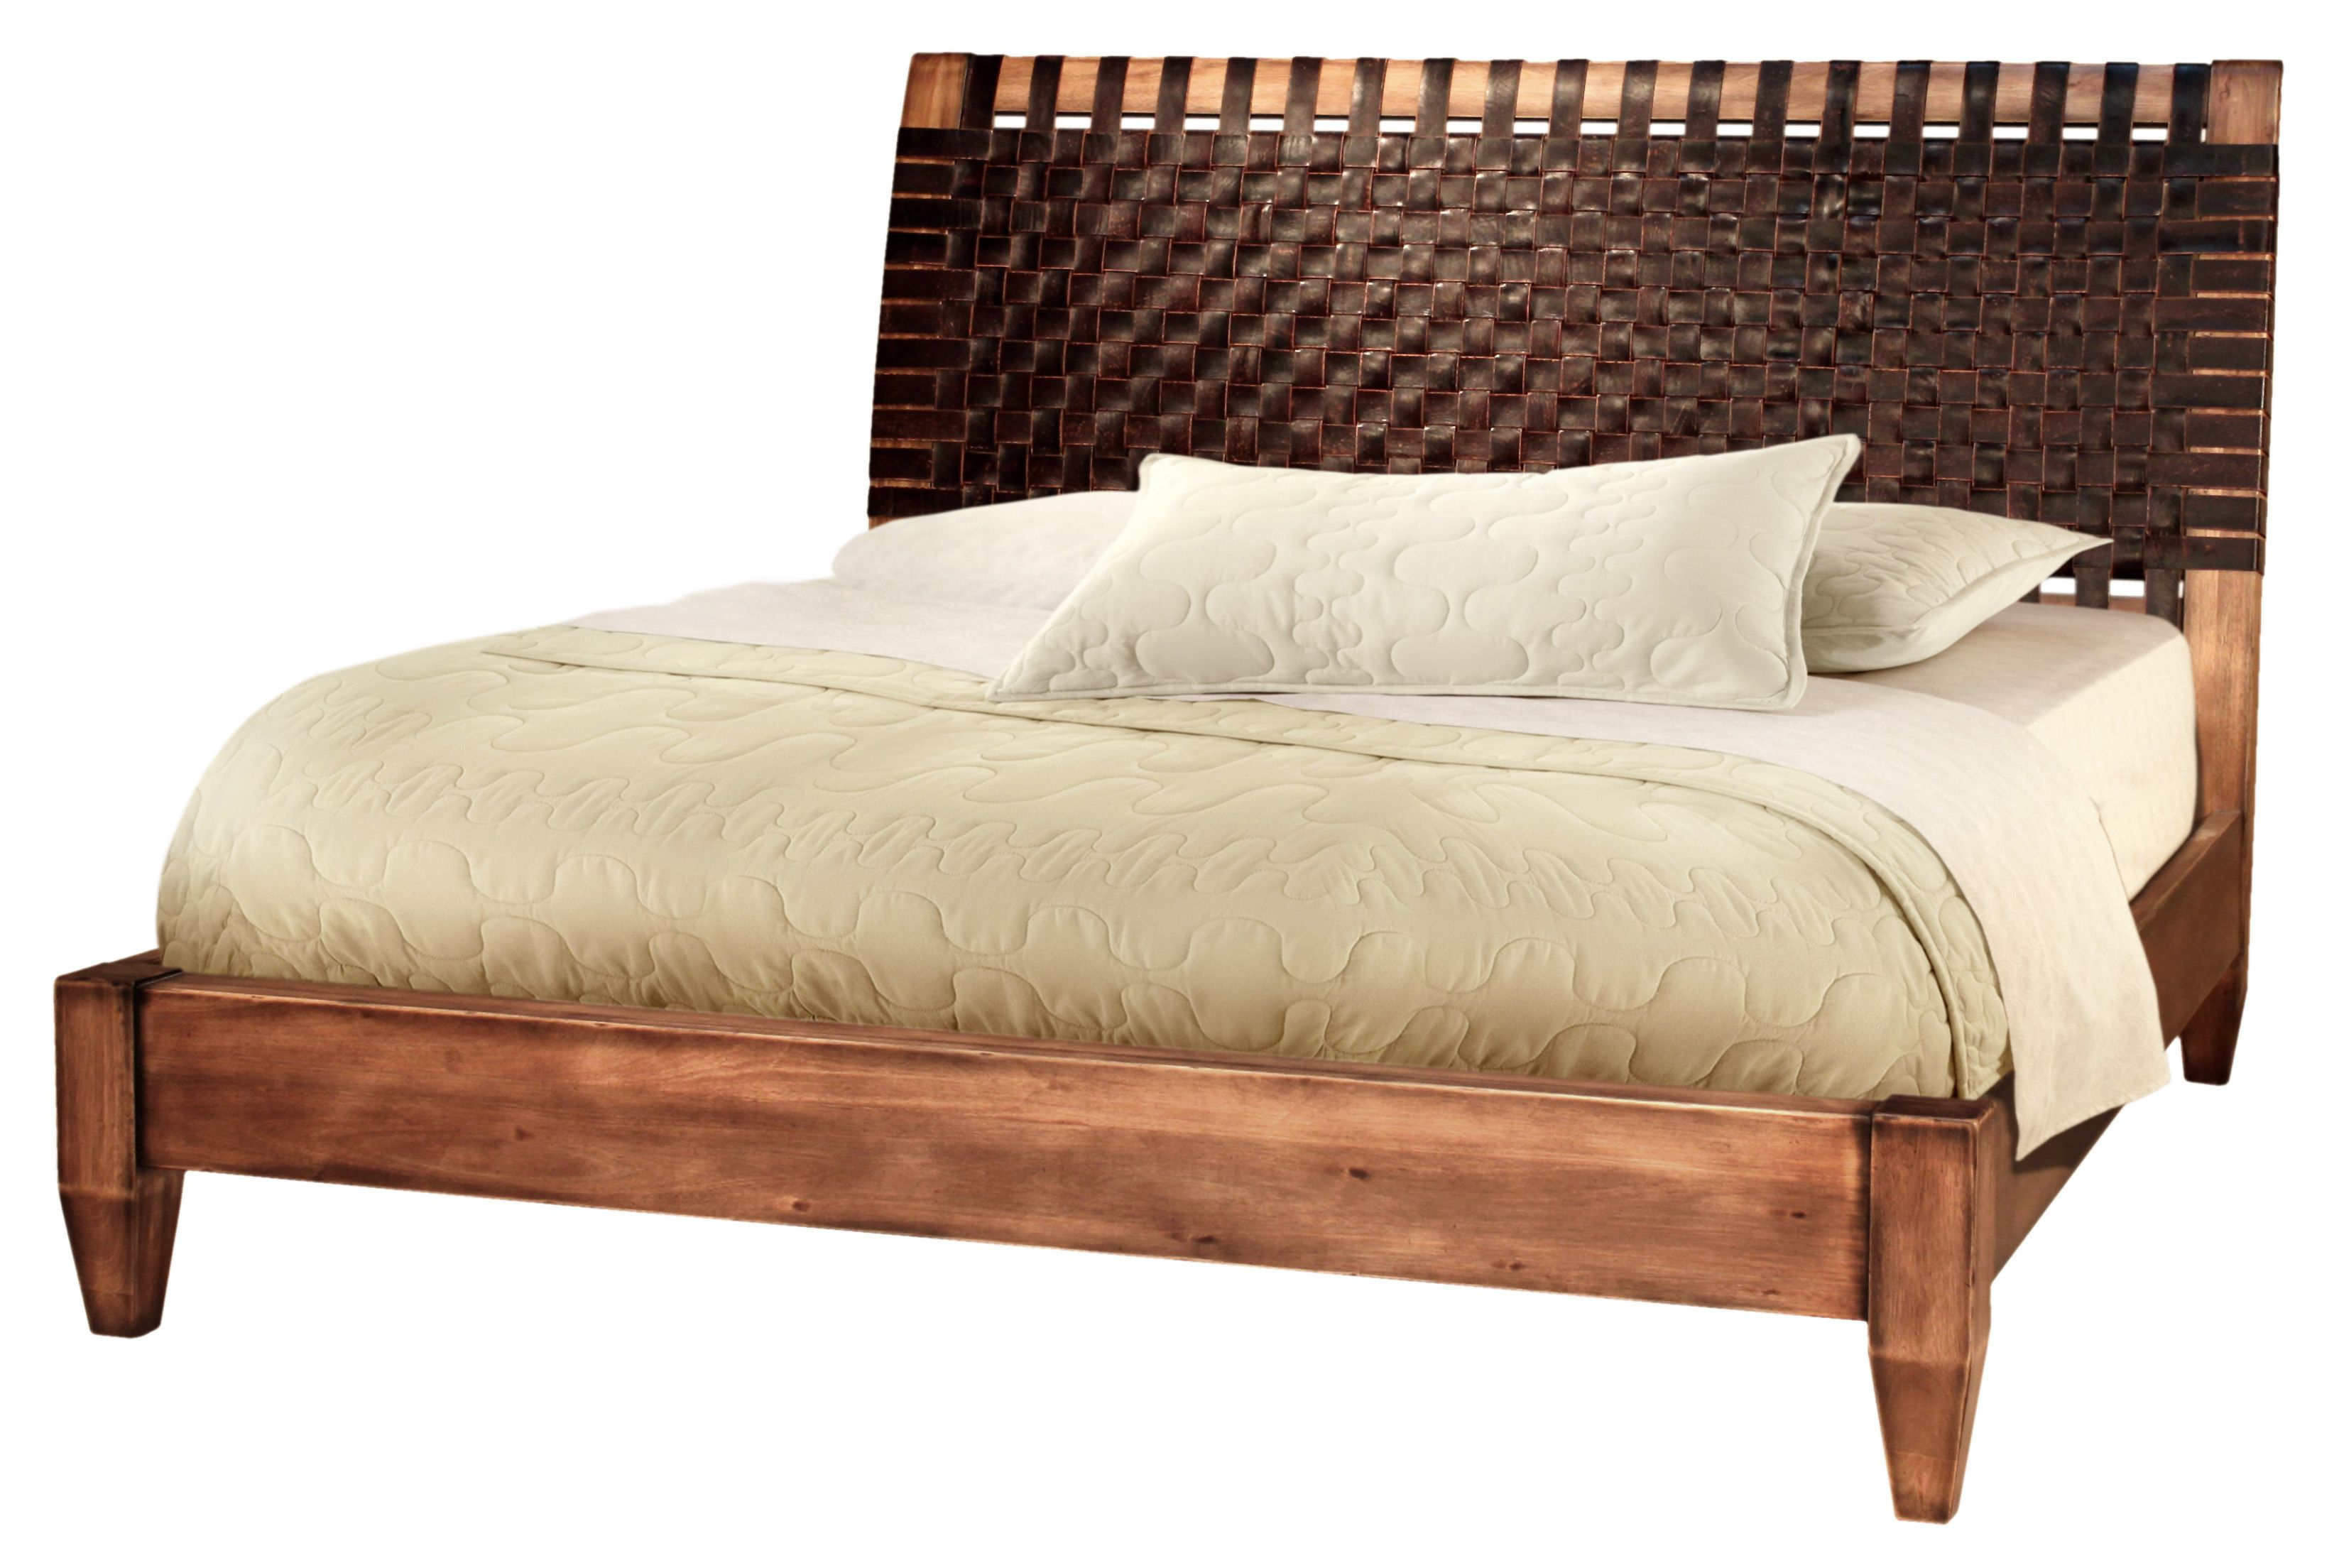 Designs Wood Low Profile Bed Frame Queen Size With Unique